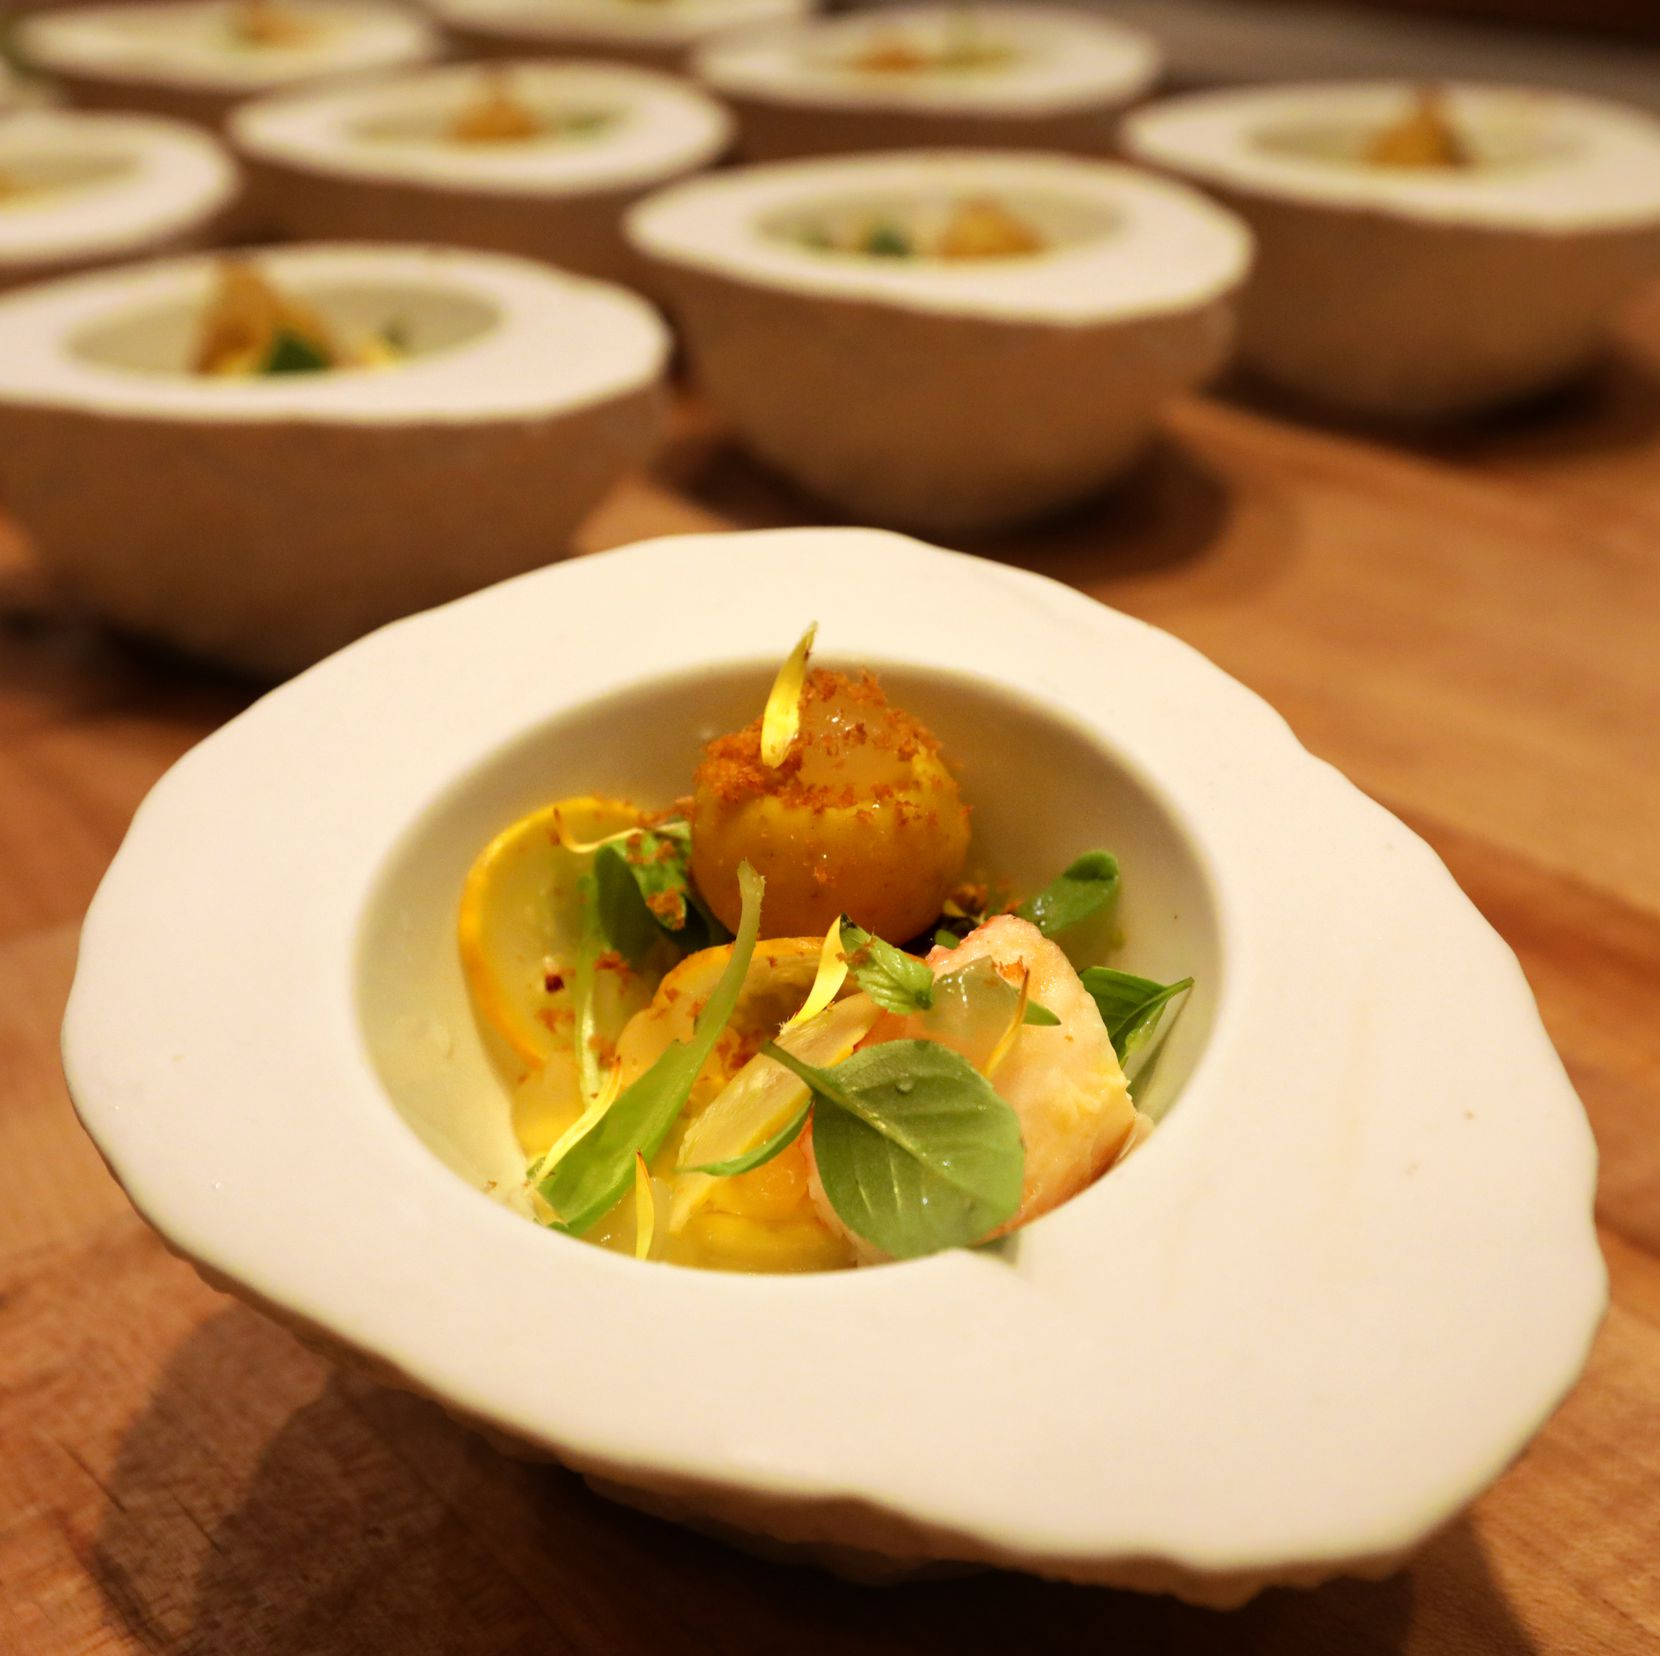 King Crab with a sphere of liquid dashi, plankton oil, butternut squash and custard infused with aji amarillo